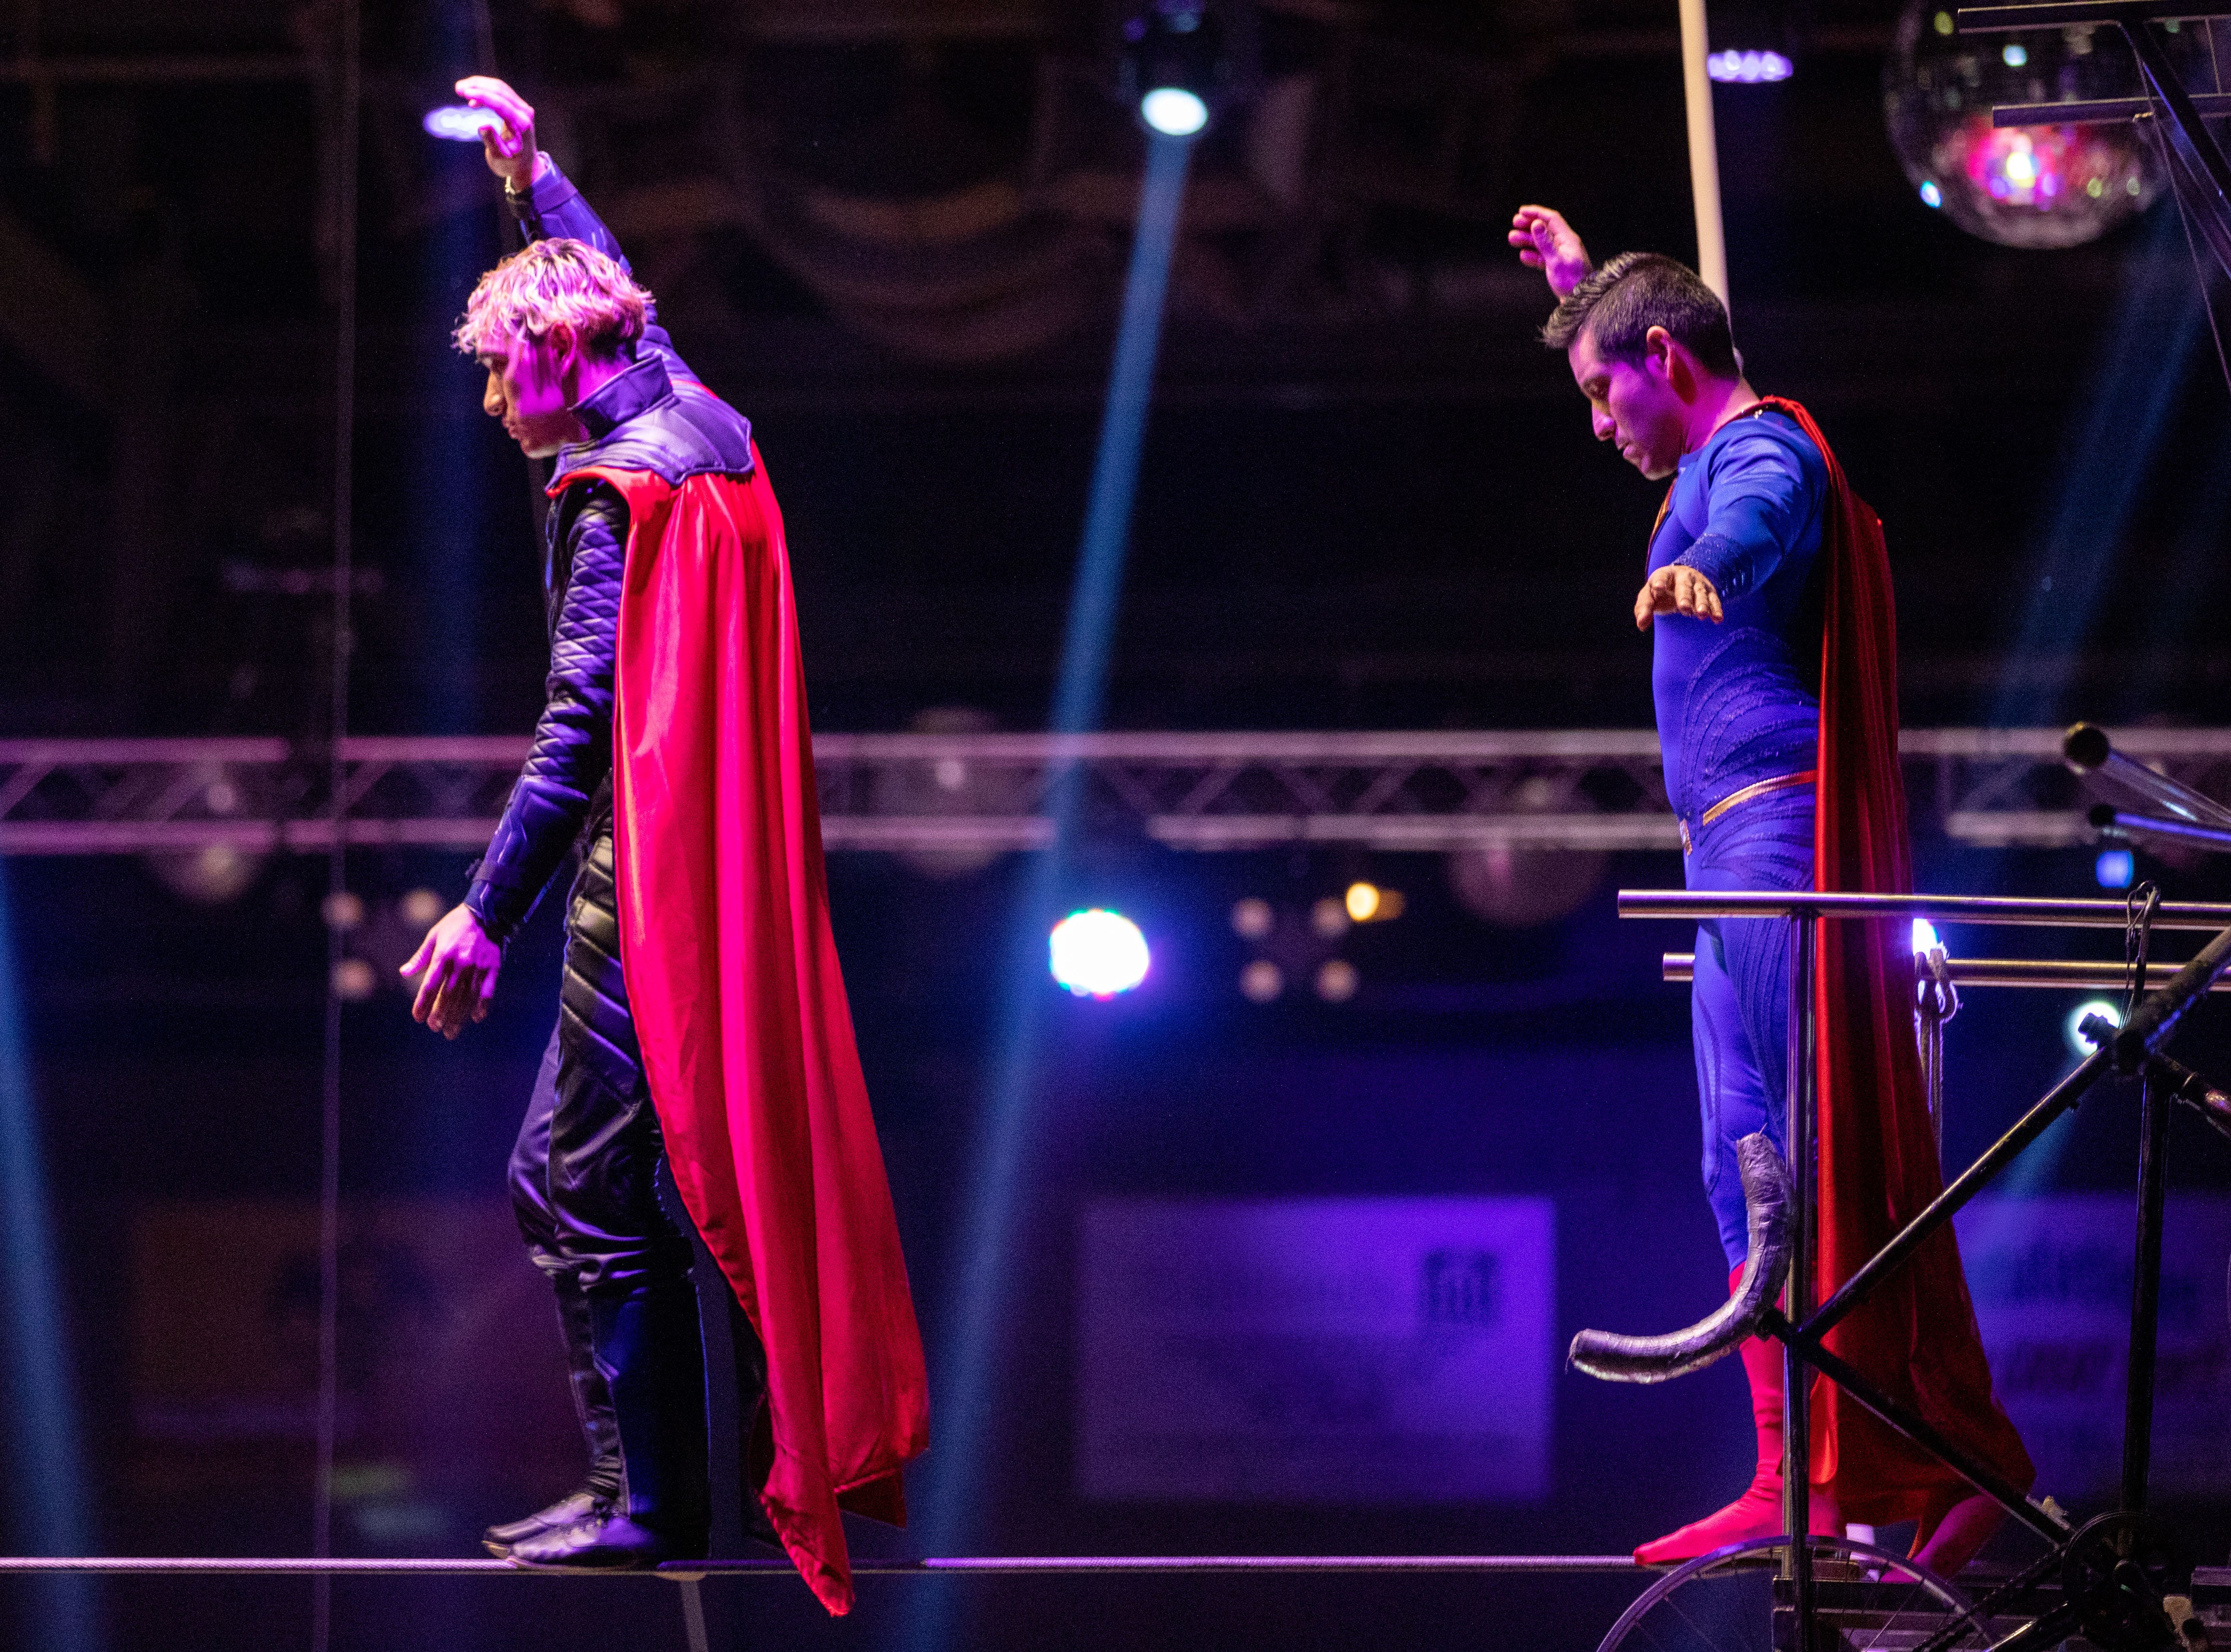 Performers walk the tightrope in superhero costumes to open the Kosair Circus, Saturday, Feb. 9, 2019 in Louisville Ky.